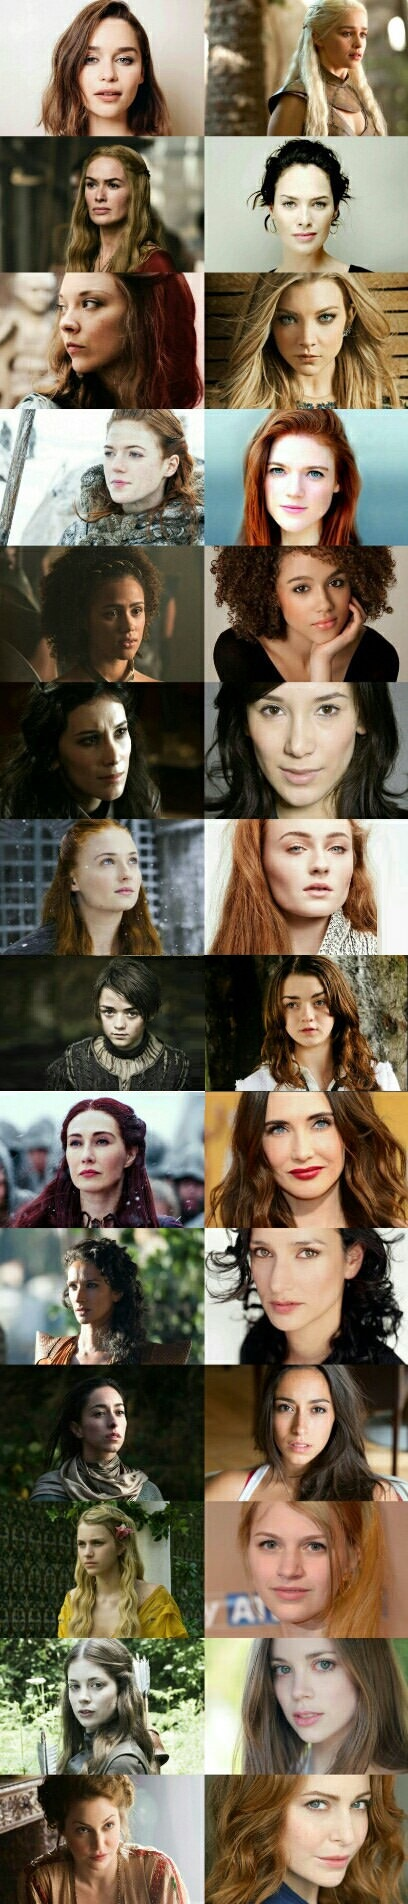 game-of-thrones-actresses-